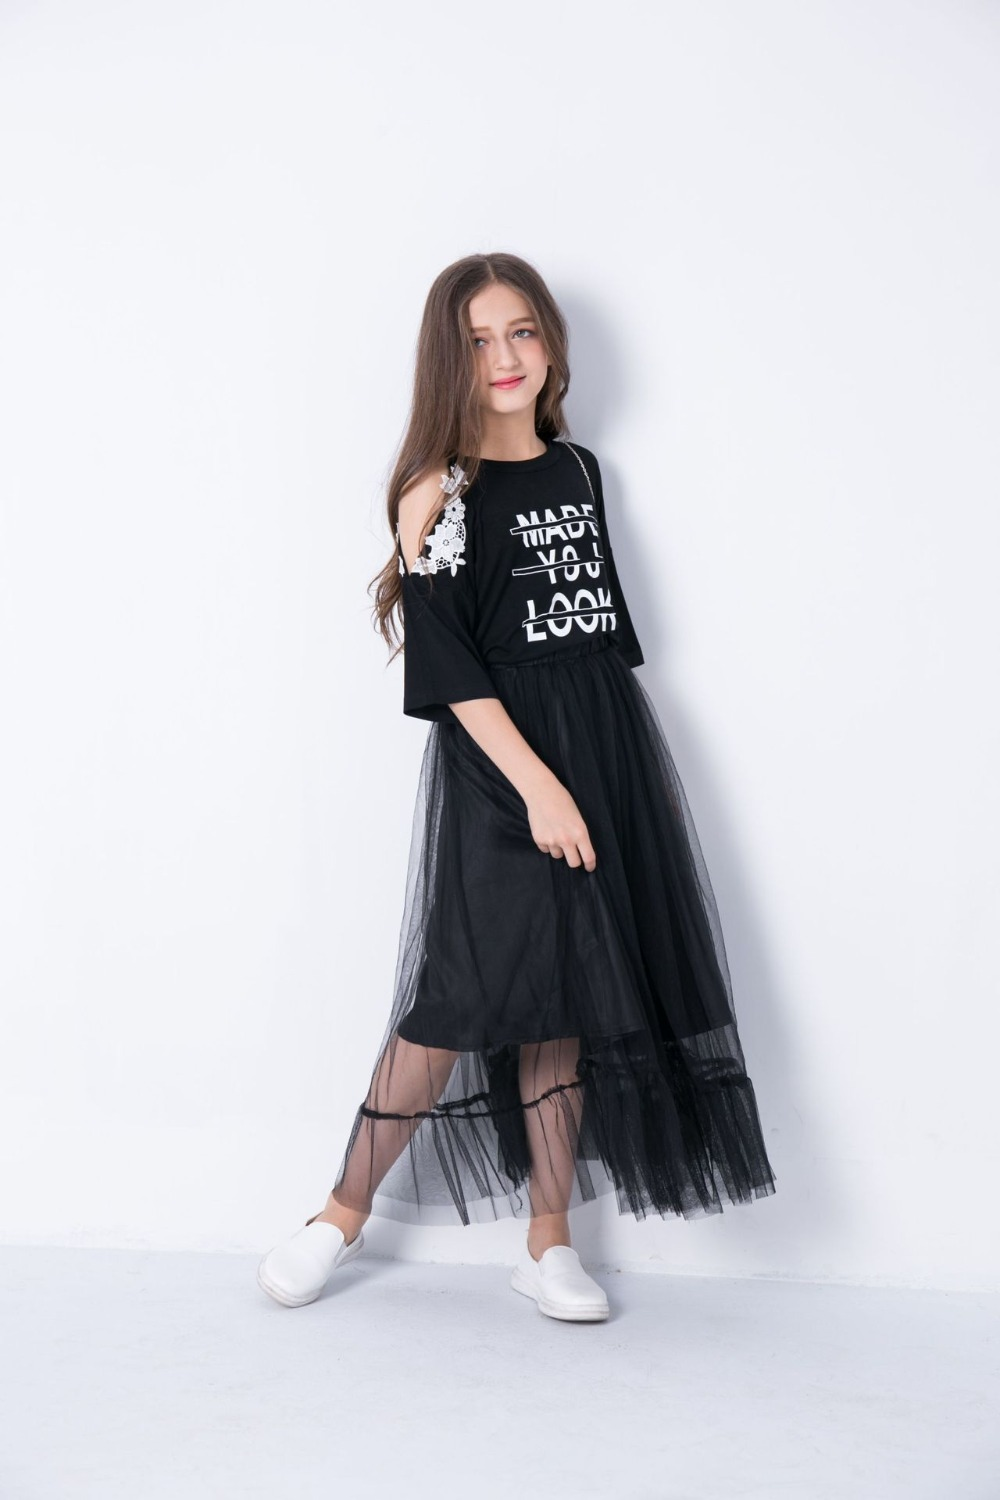 ed4c575d99caa Teen Girls Clothing Sets 10 11 12 14 years Girls Half Sleeve Summer Girls  Clothes 2pcs Off shoulder Tops Black Mesh Skirts -in Clothing Sets from ...